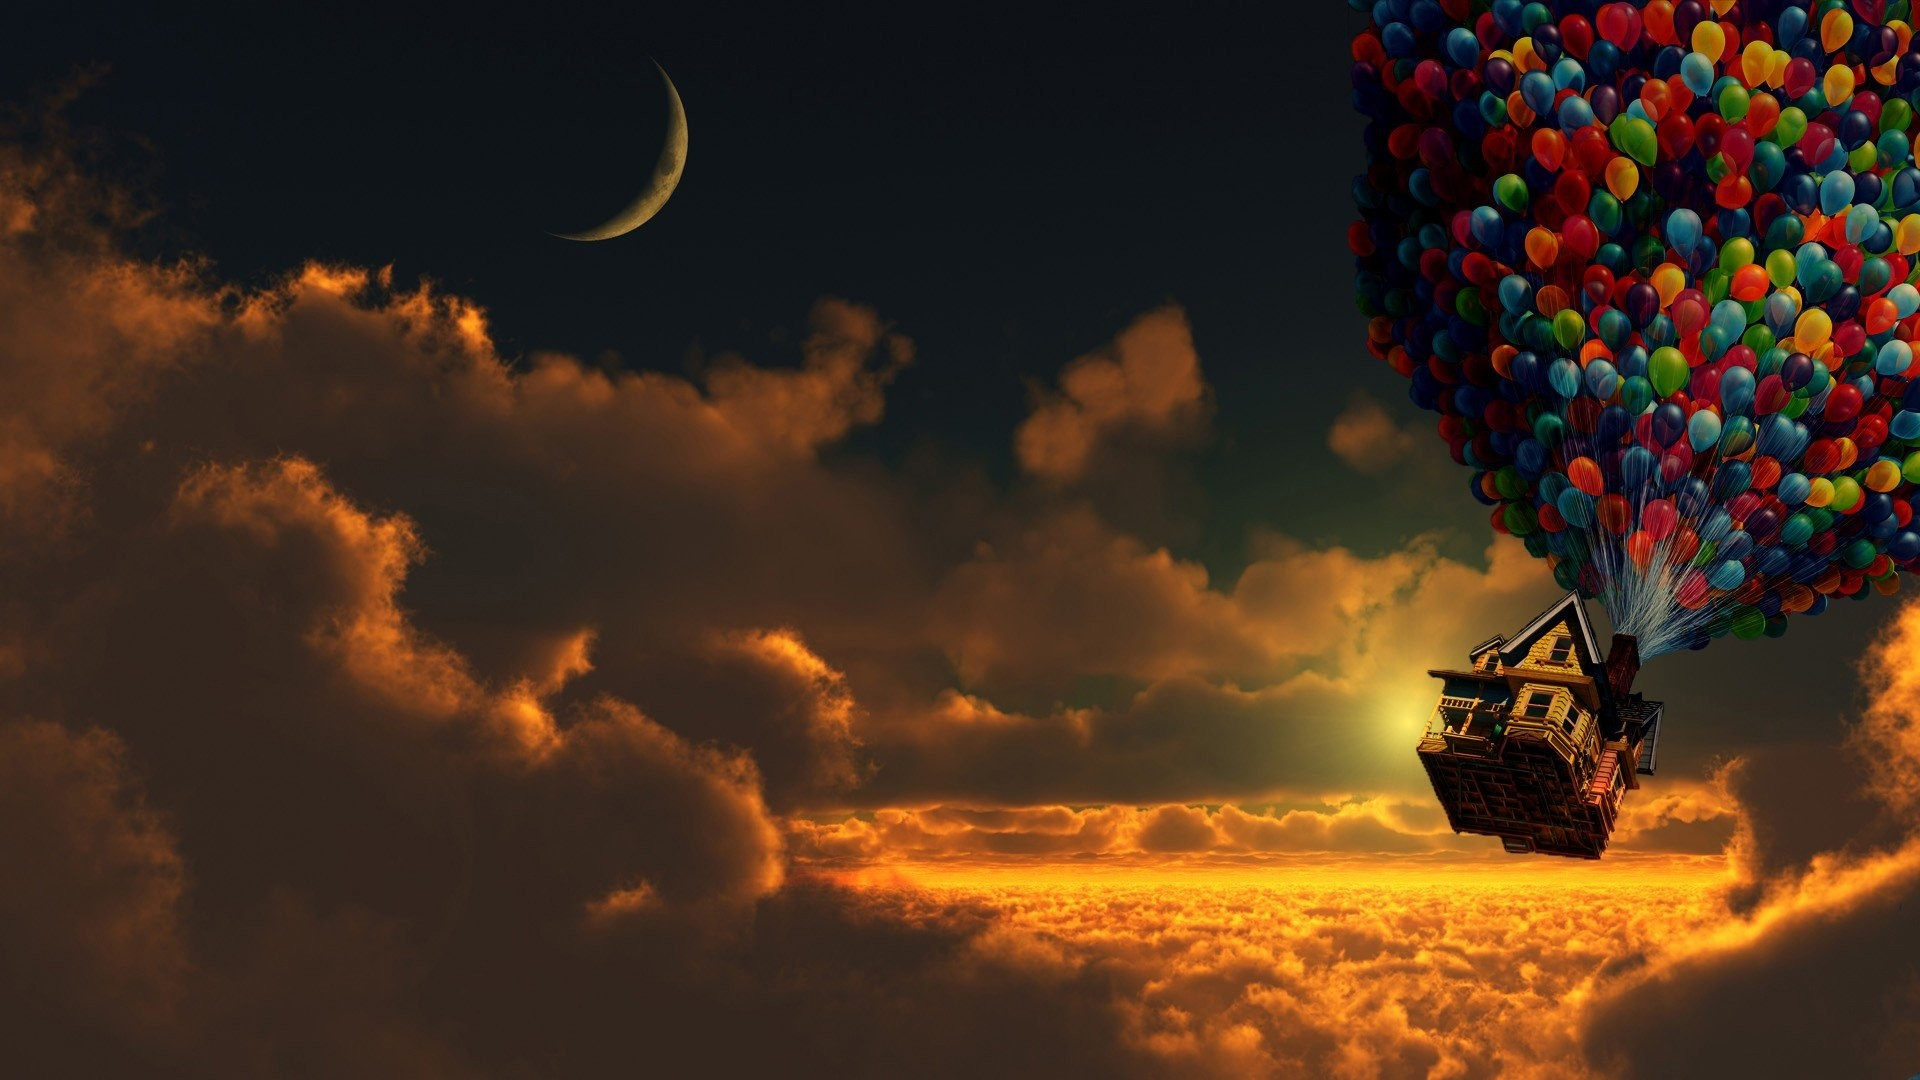 1920x1080 Artwork Balloons Clouds Digital Art Houses Moon Pixar Sunset Up Movie